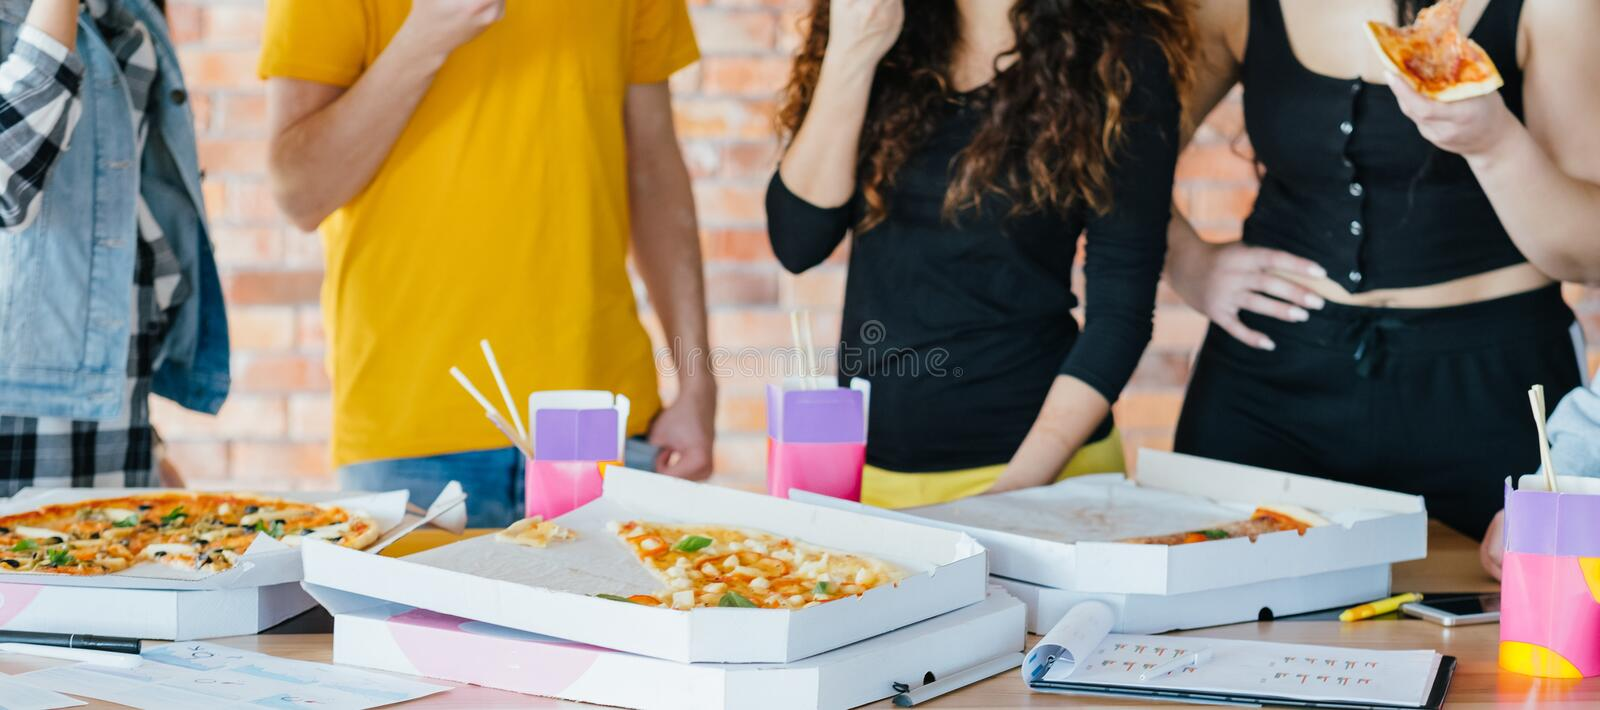 Food delivery business guys pizza takeout lunch. Food delivery for busy business guys. Pizza and takeout meal boxes. Cropped shot of men women eating. Lunch royalty free stock photography